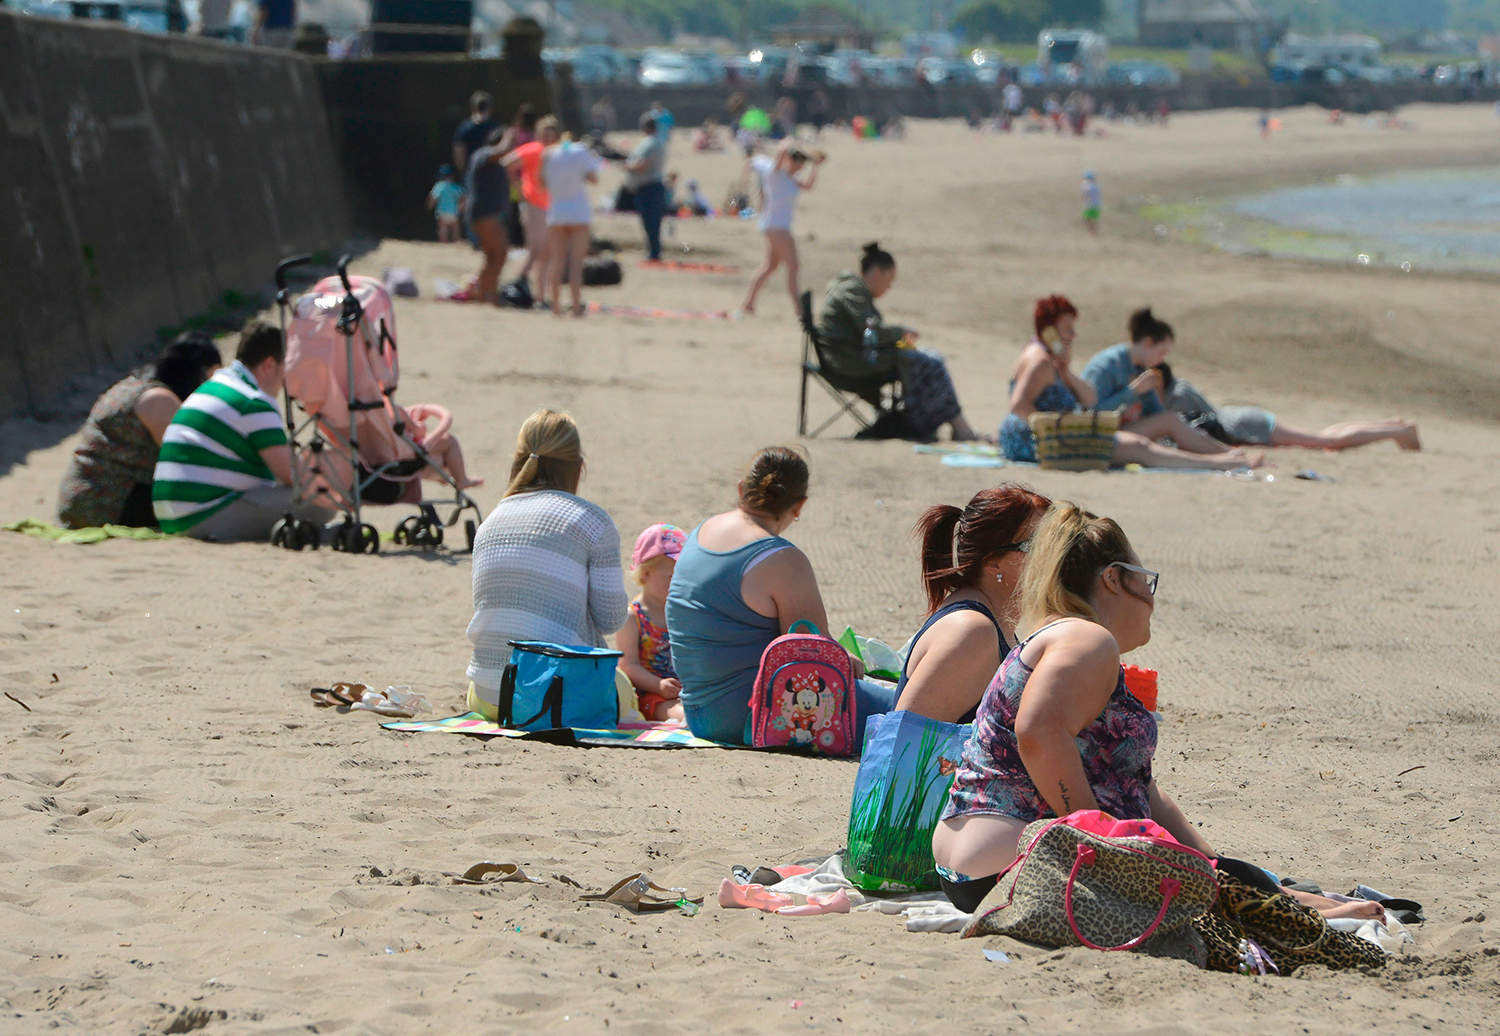 SCOTS SOAK UP GLORIOUS SUNSHINE AT BEACH